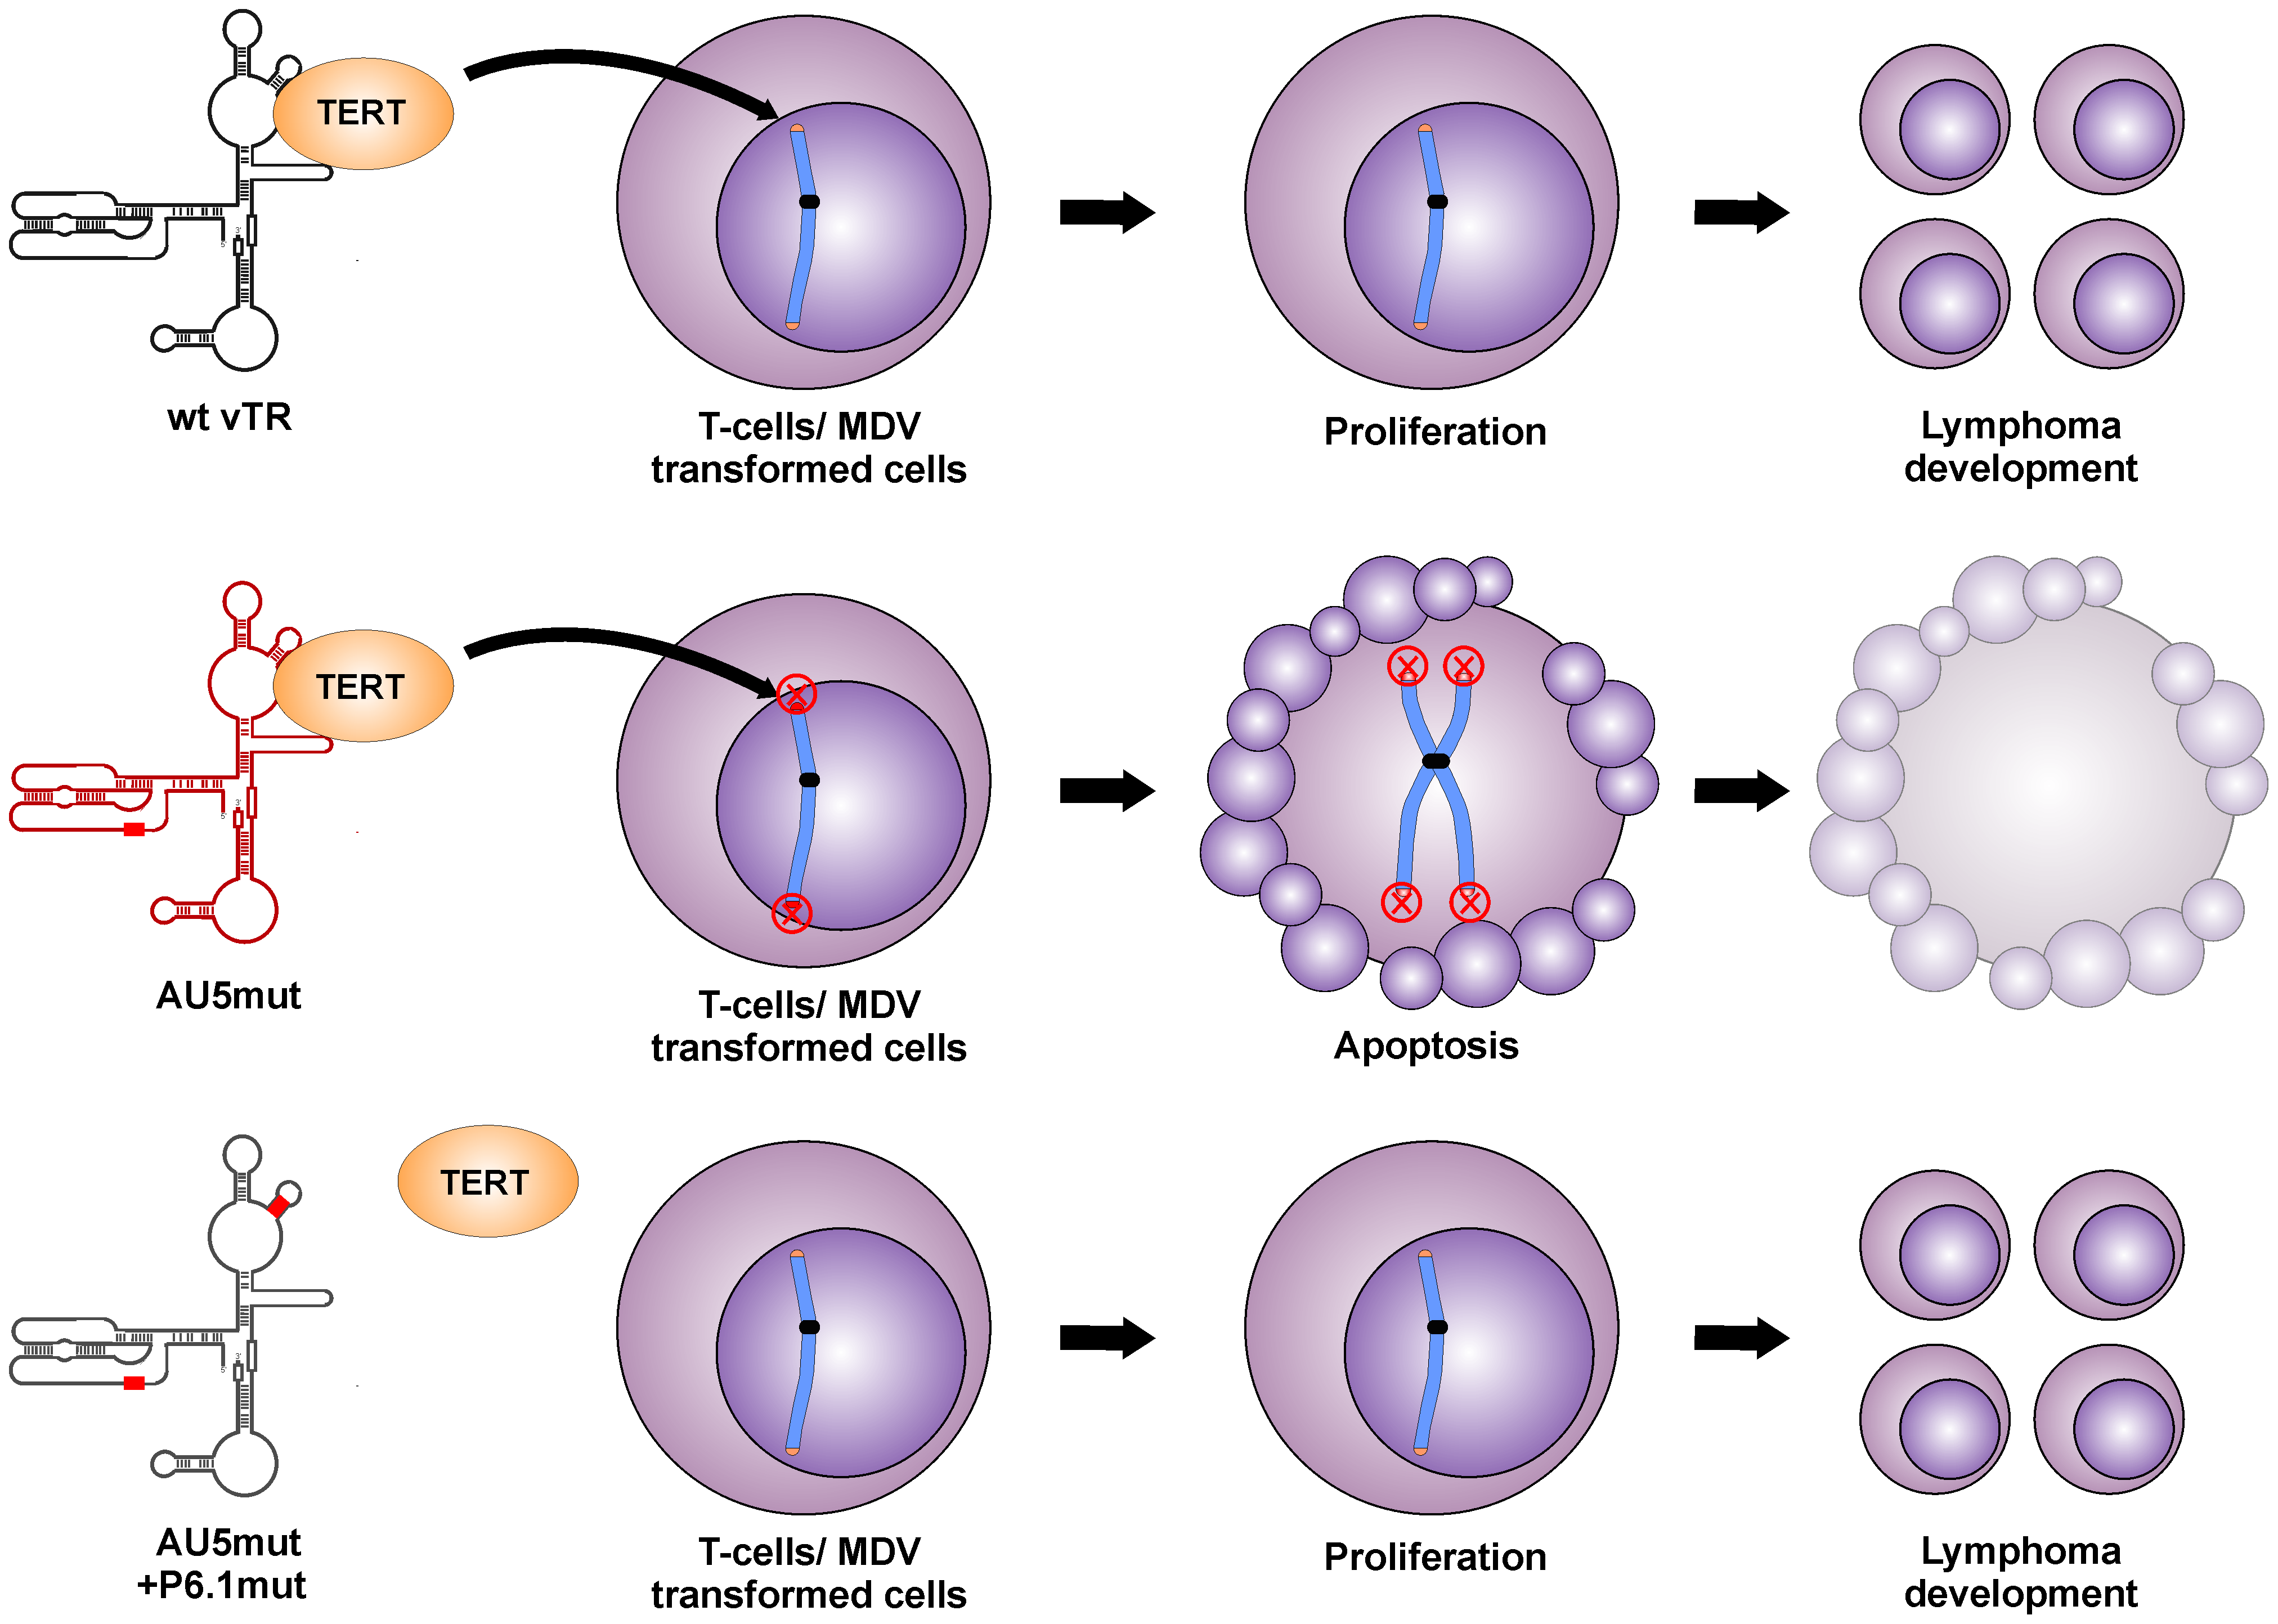 Proposed model for abrogation of tumor induction by mutant template sequence vTR through incorporation of mutant telomere sequences in transformed T cells.